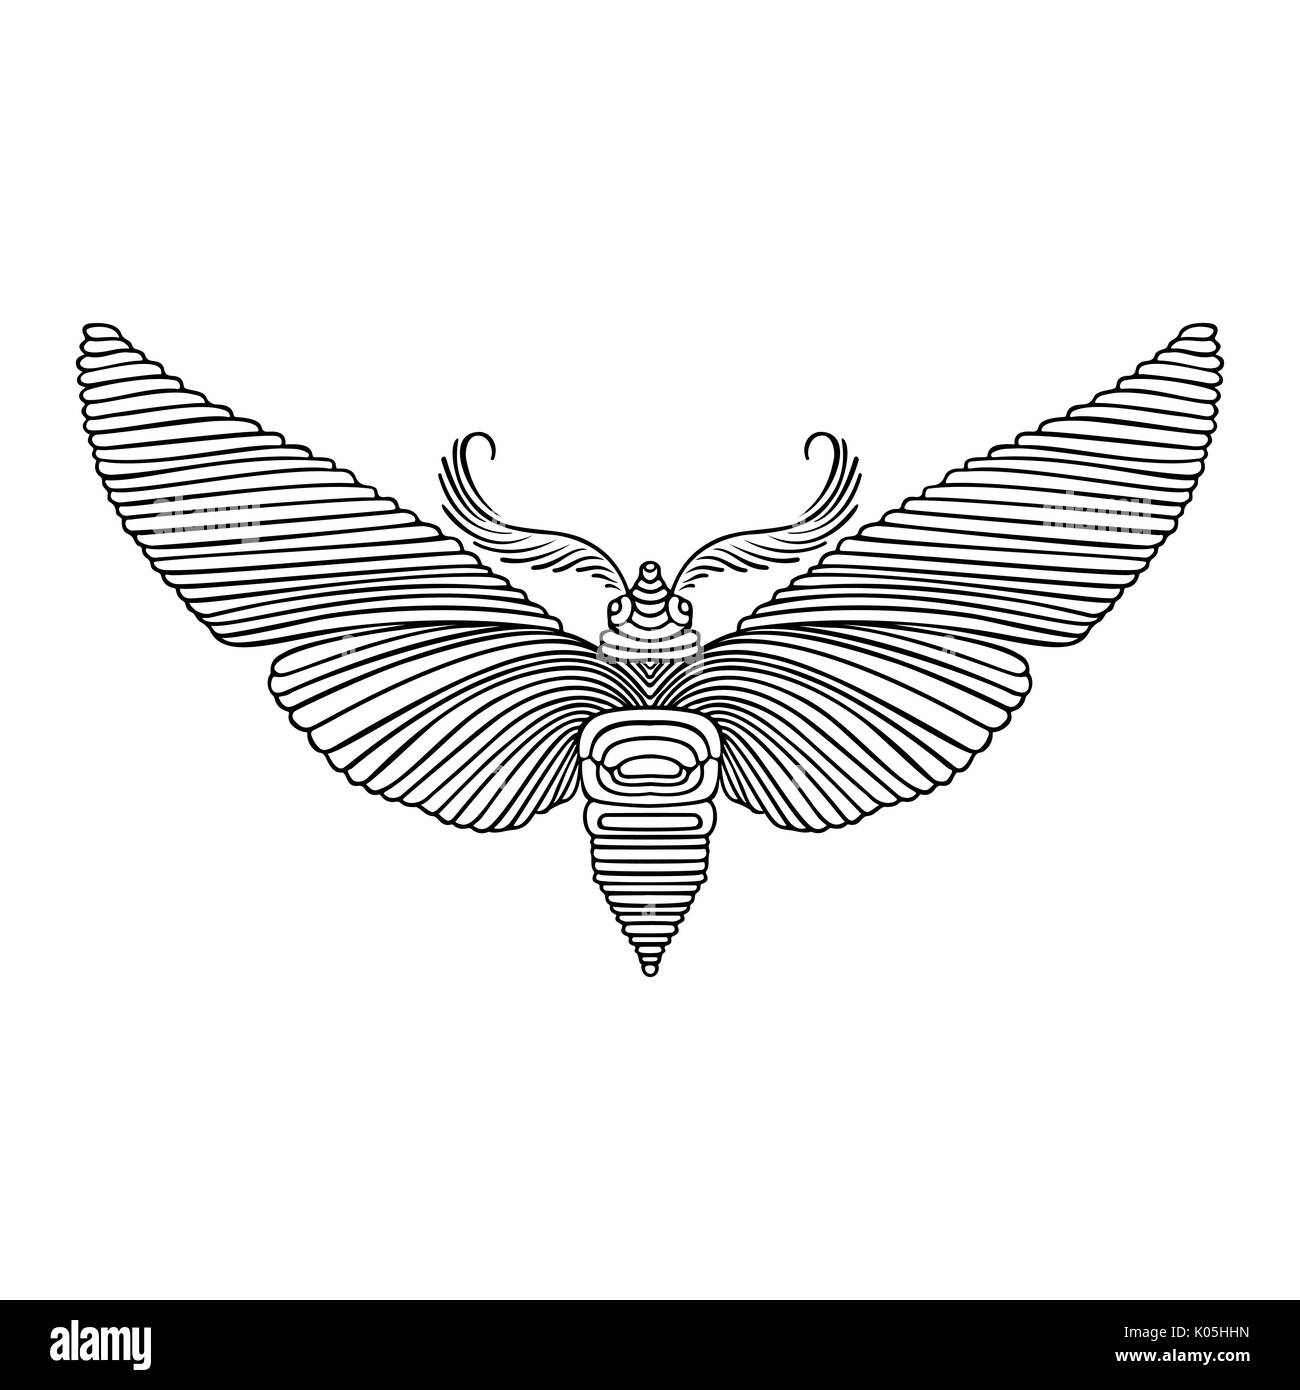 Night Butterfly Adult Coloring Book Vector Illustration Anti Stress Zentangle Style Black And White Sketch